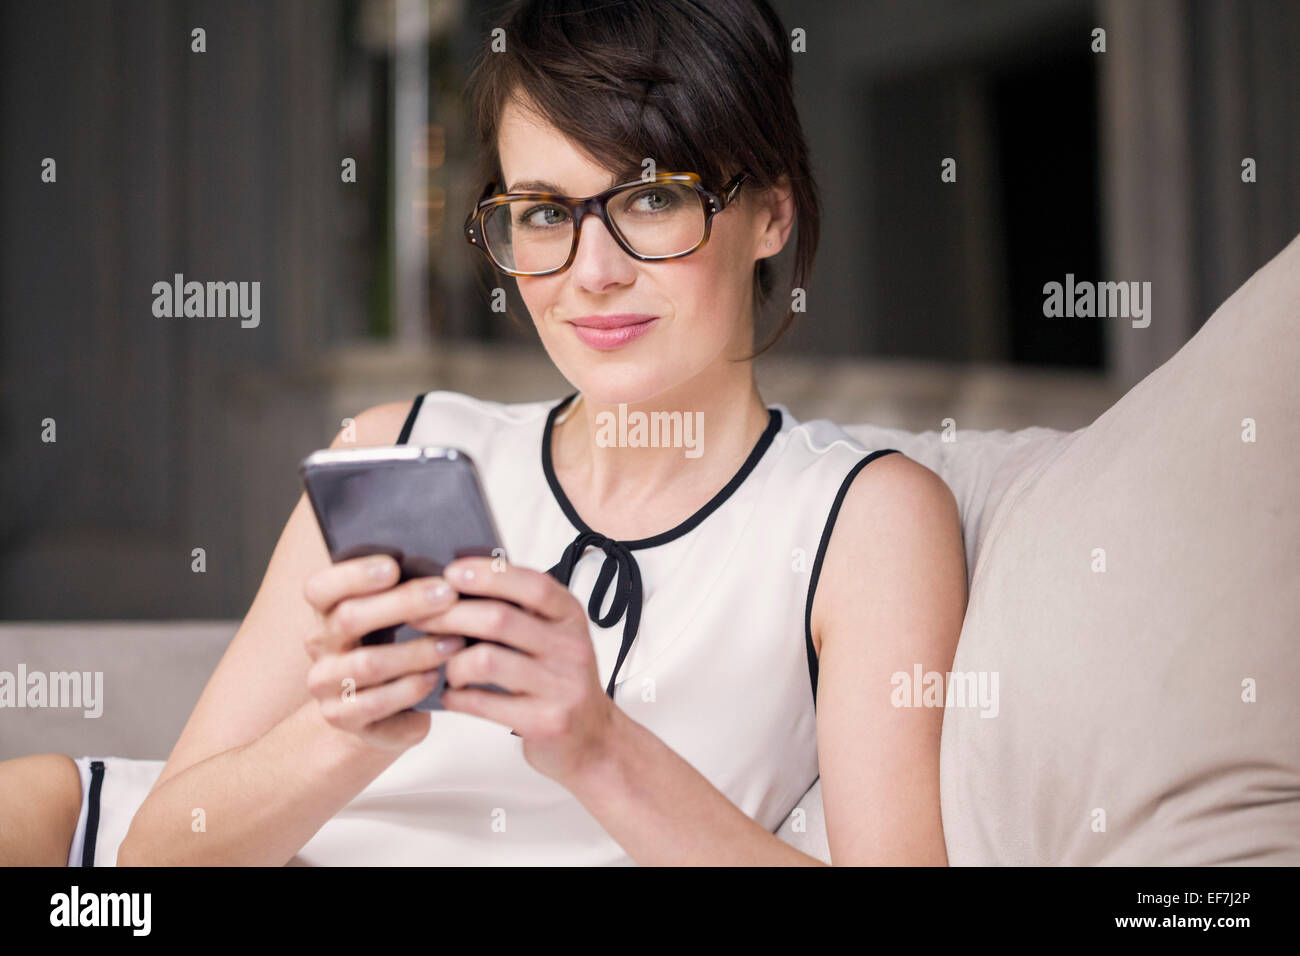 Woman using a smartphone - Stock Image